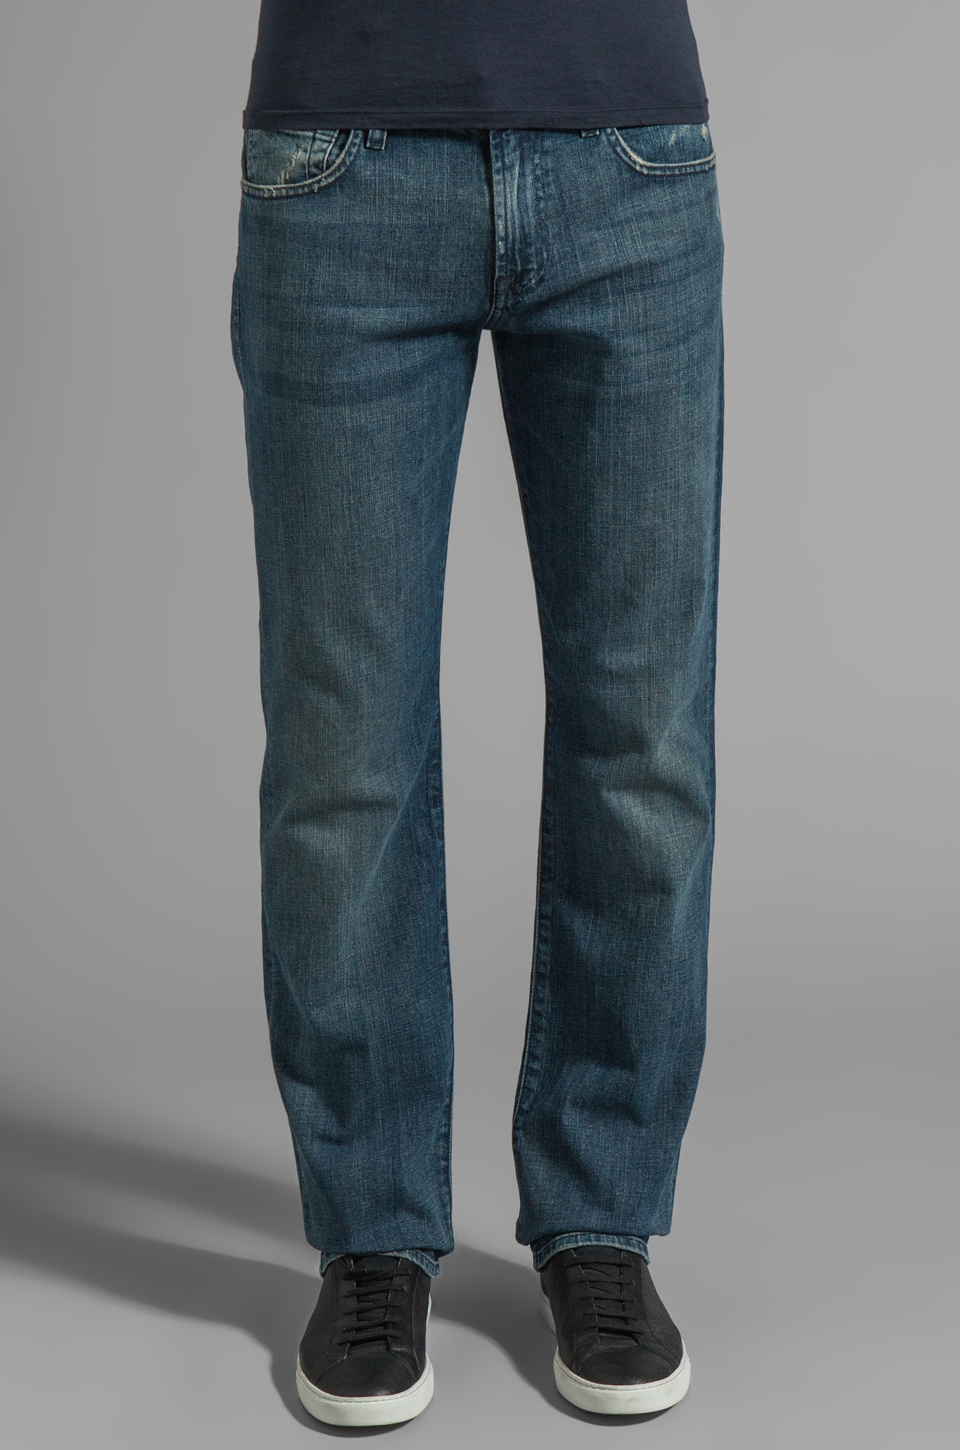 7 For All Mankind Carsen in Stony Creek Blue